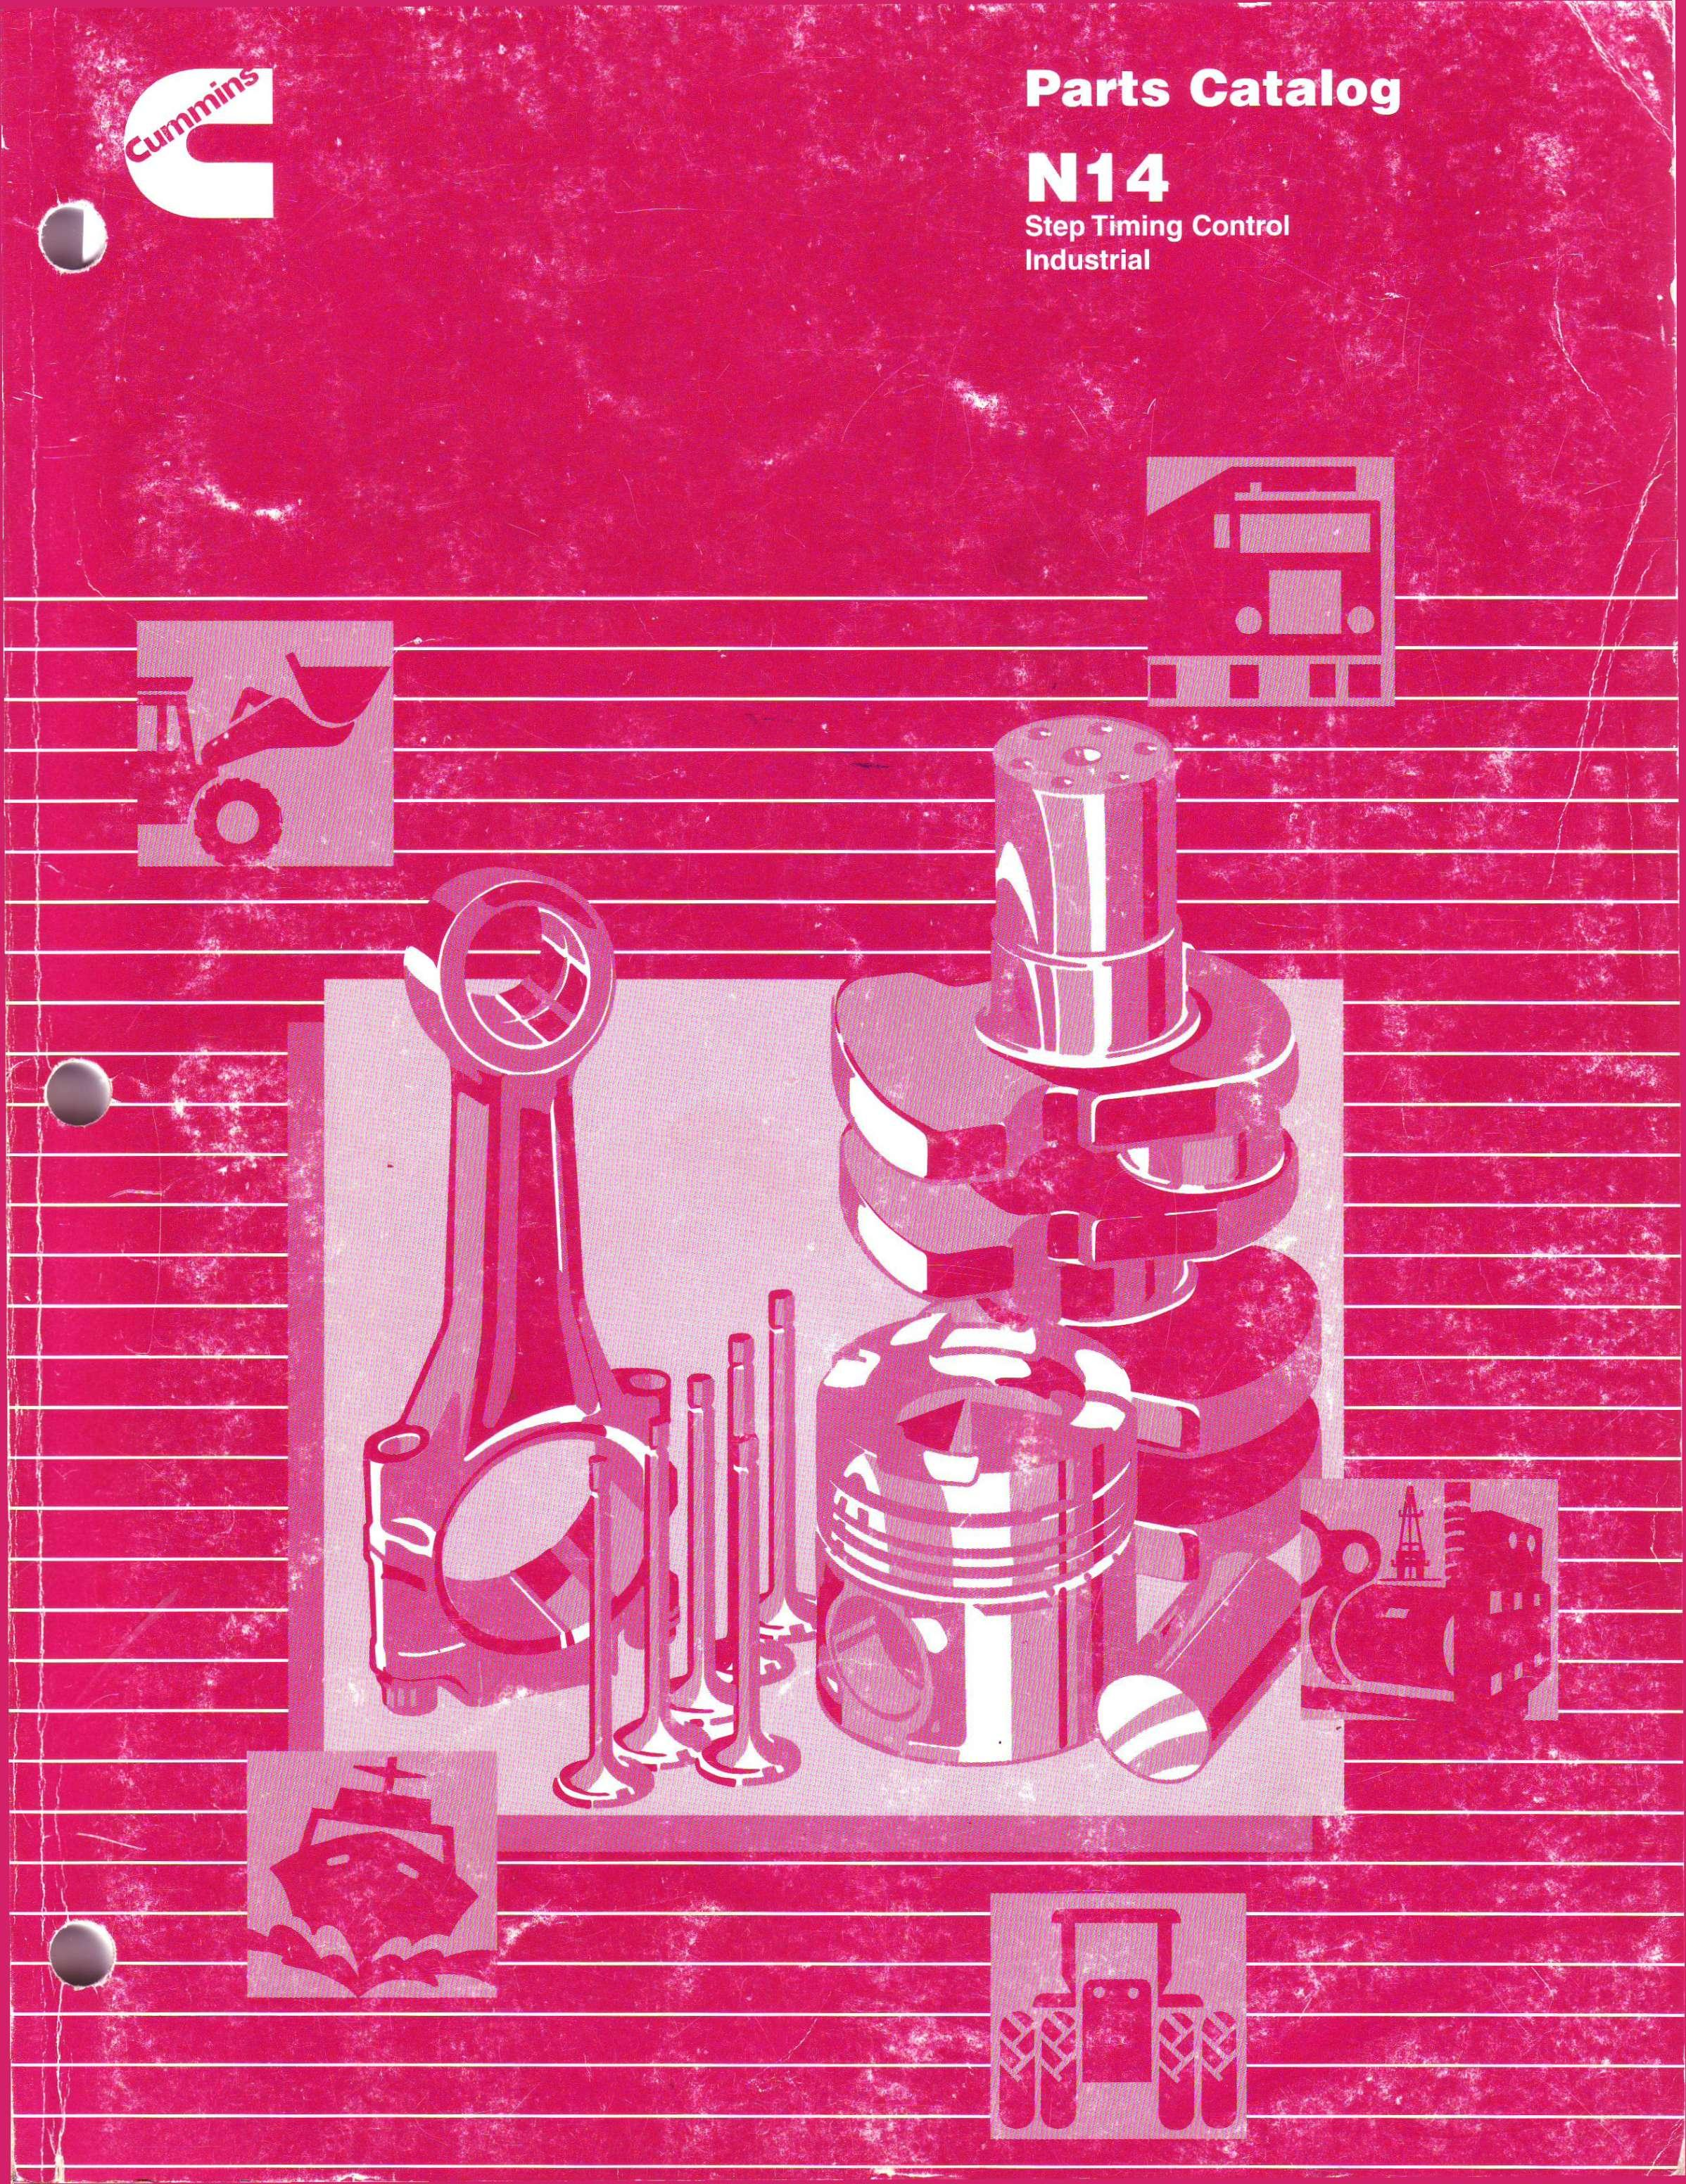 Parts Catalog N14  Step Timing Control Industrial ЕВ» - PDF